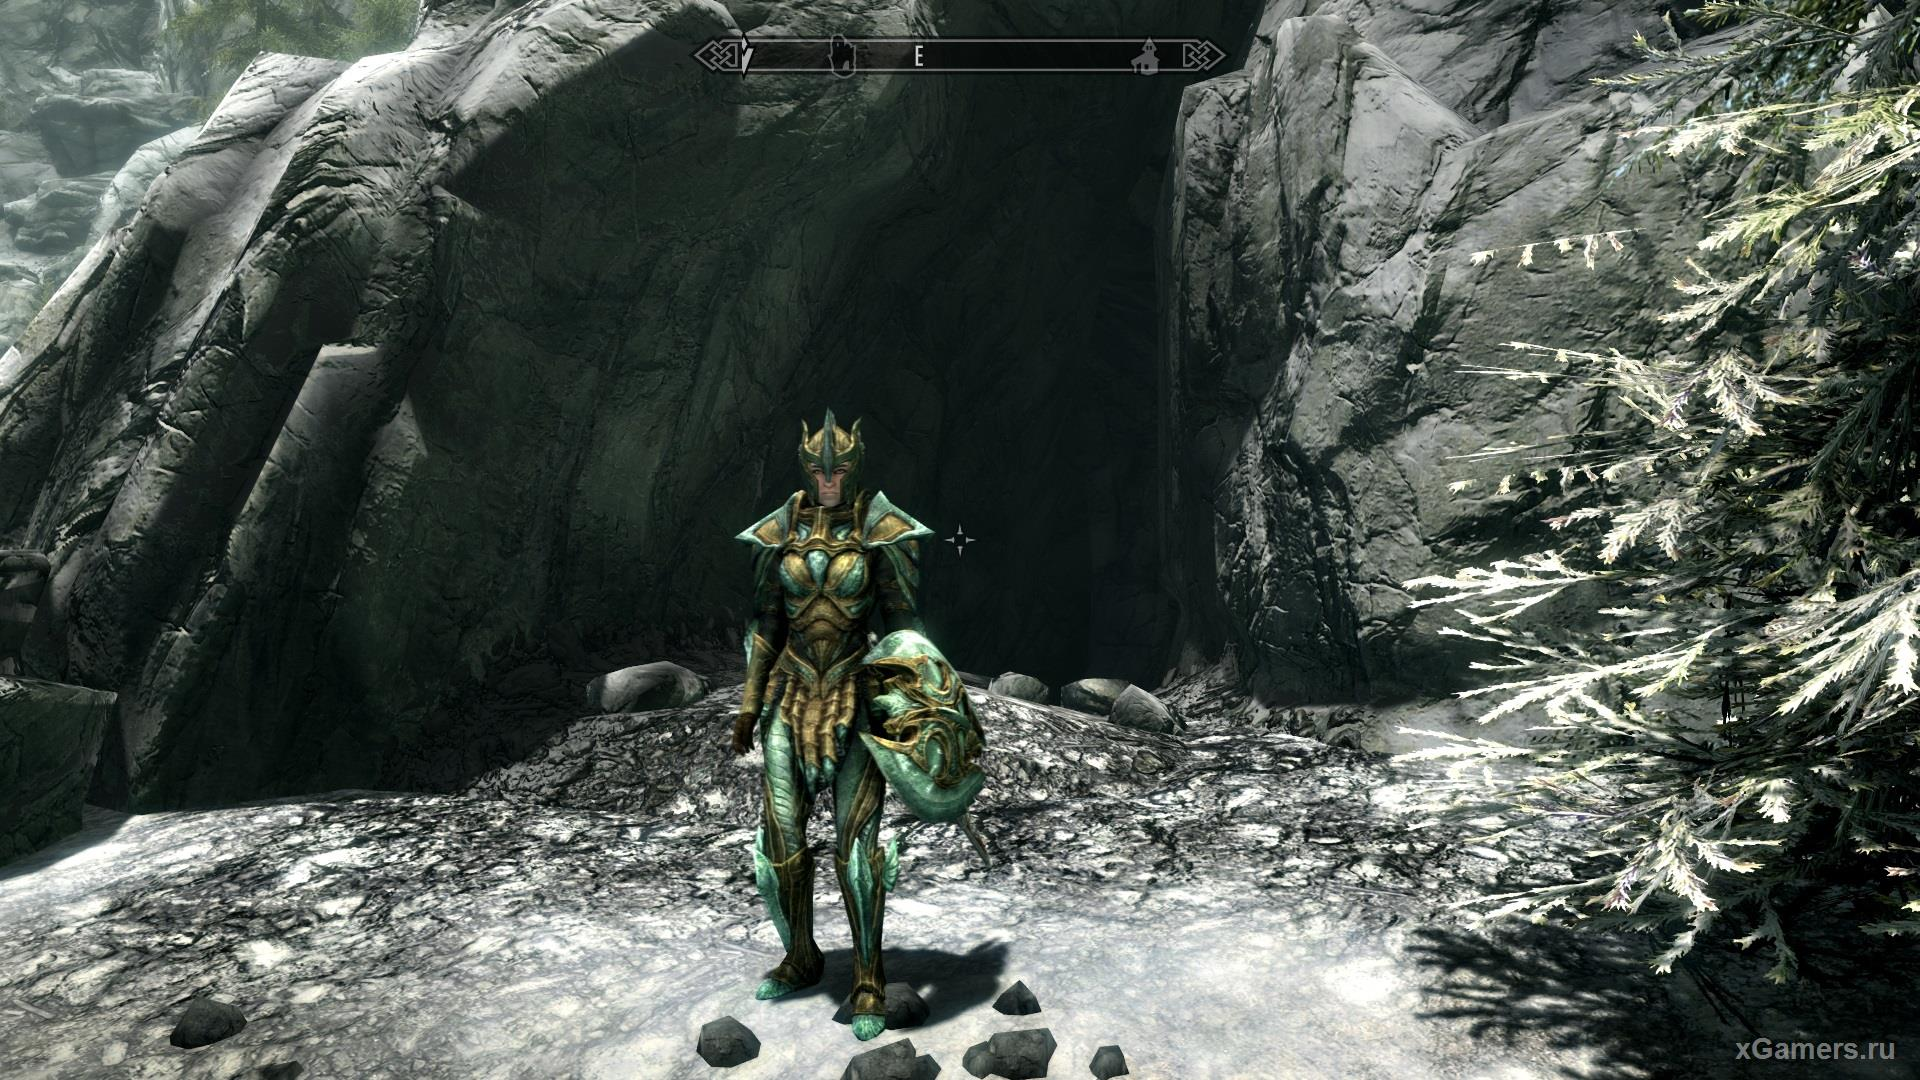 Skyrim glass armor is available upon reaching level 30